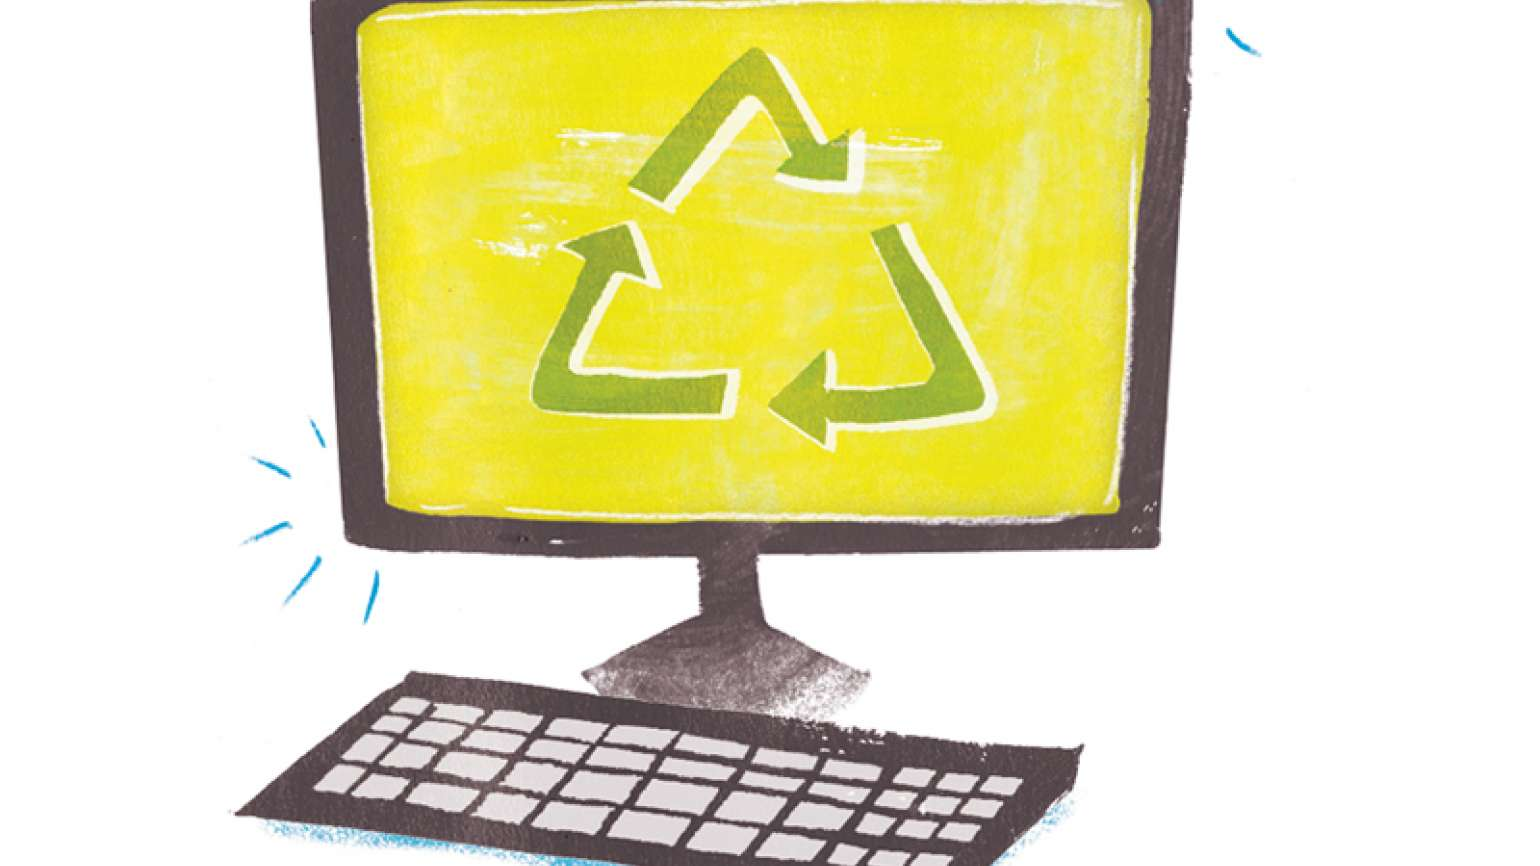 An artist's rendering of a computer with a recycling logo on its monitor screen